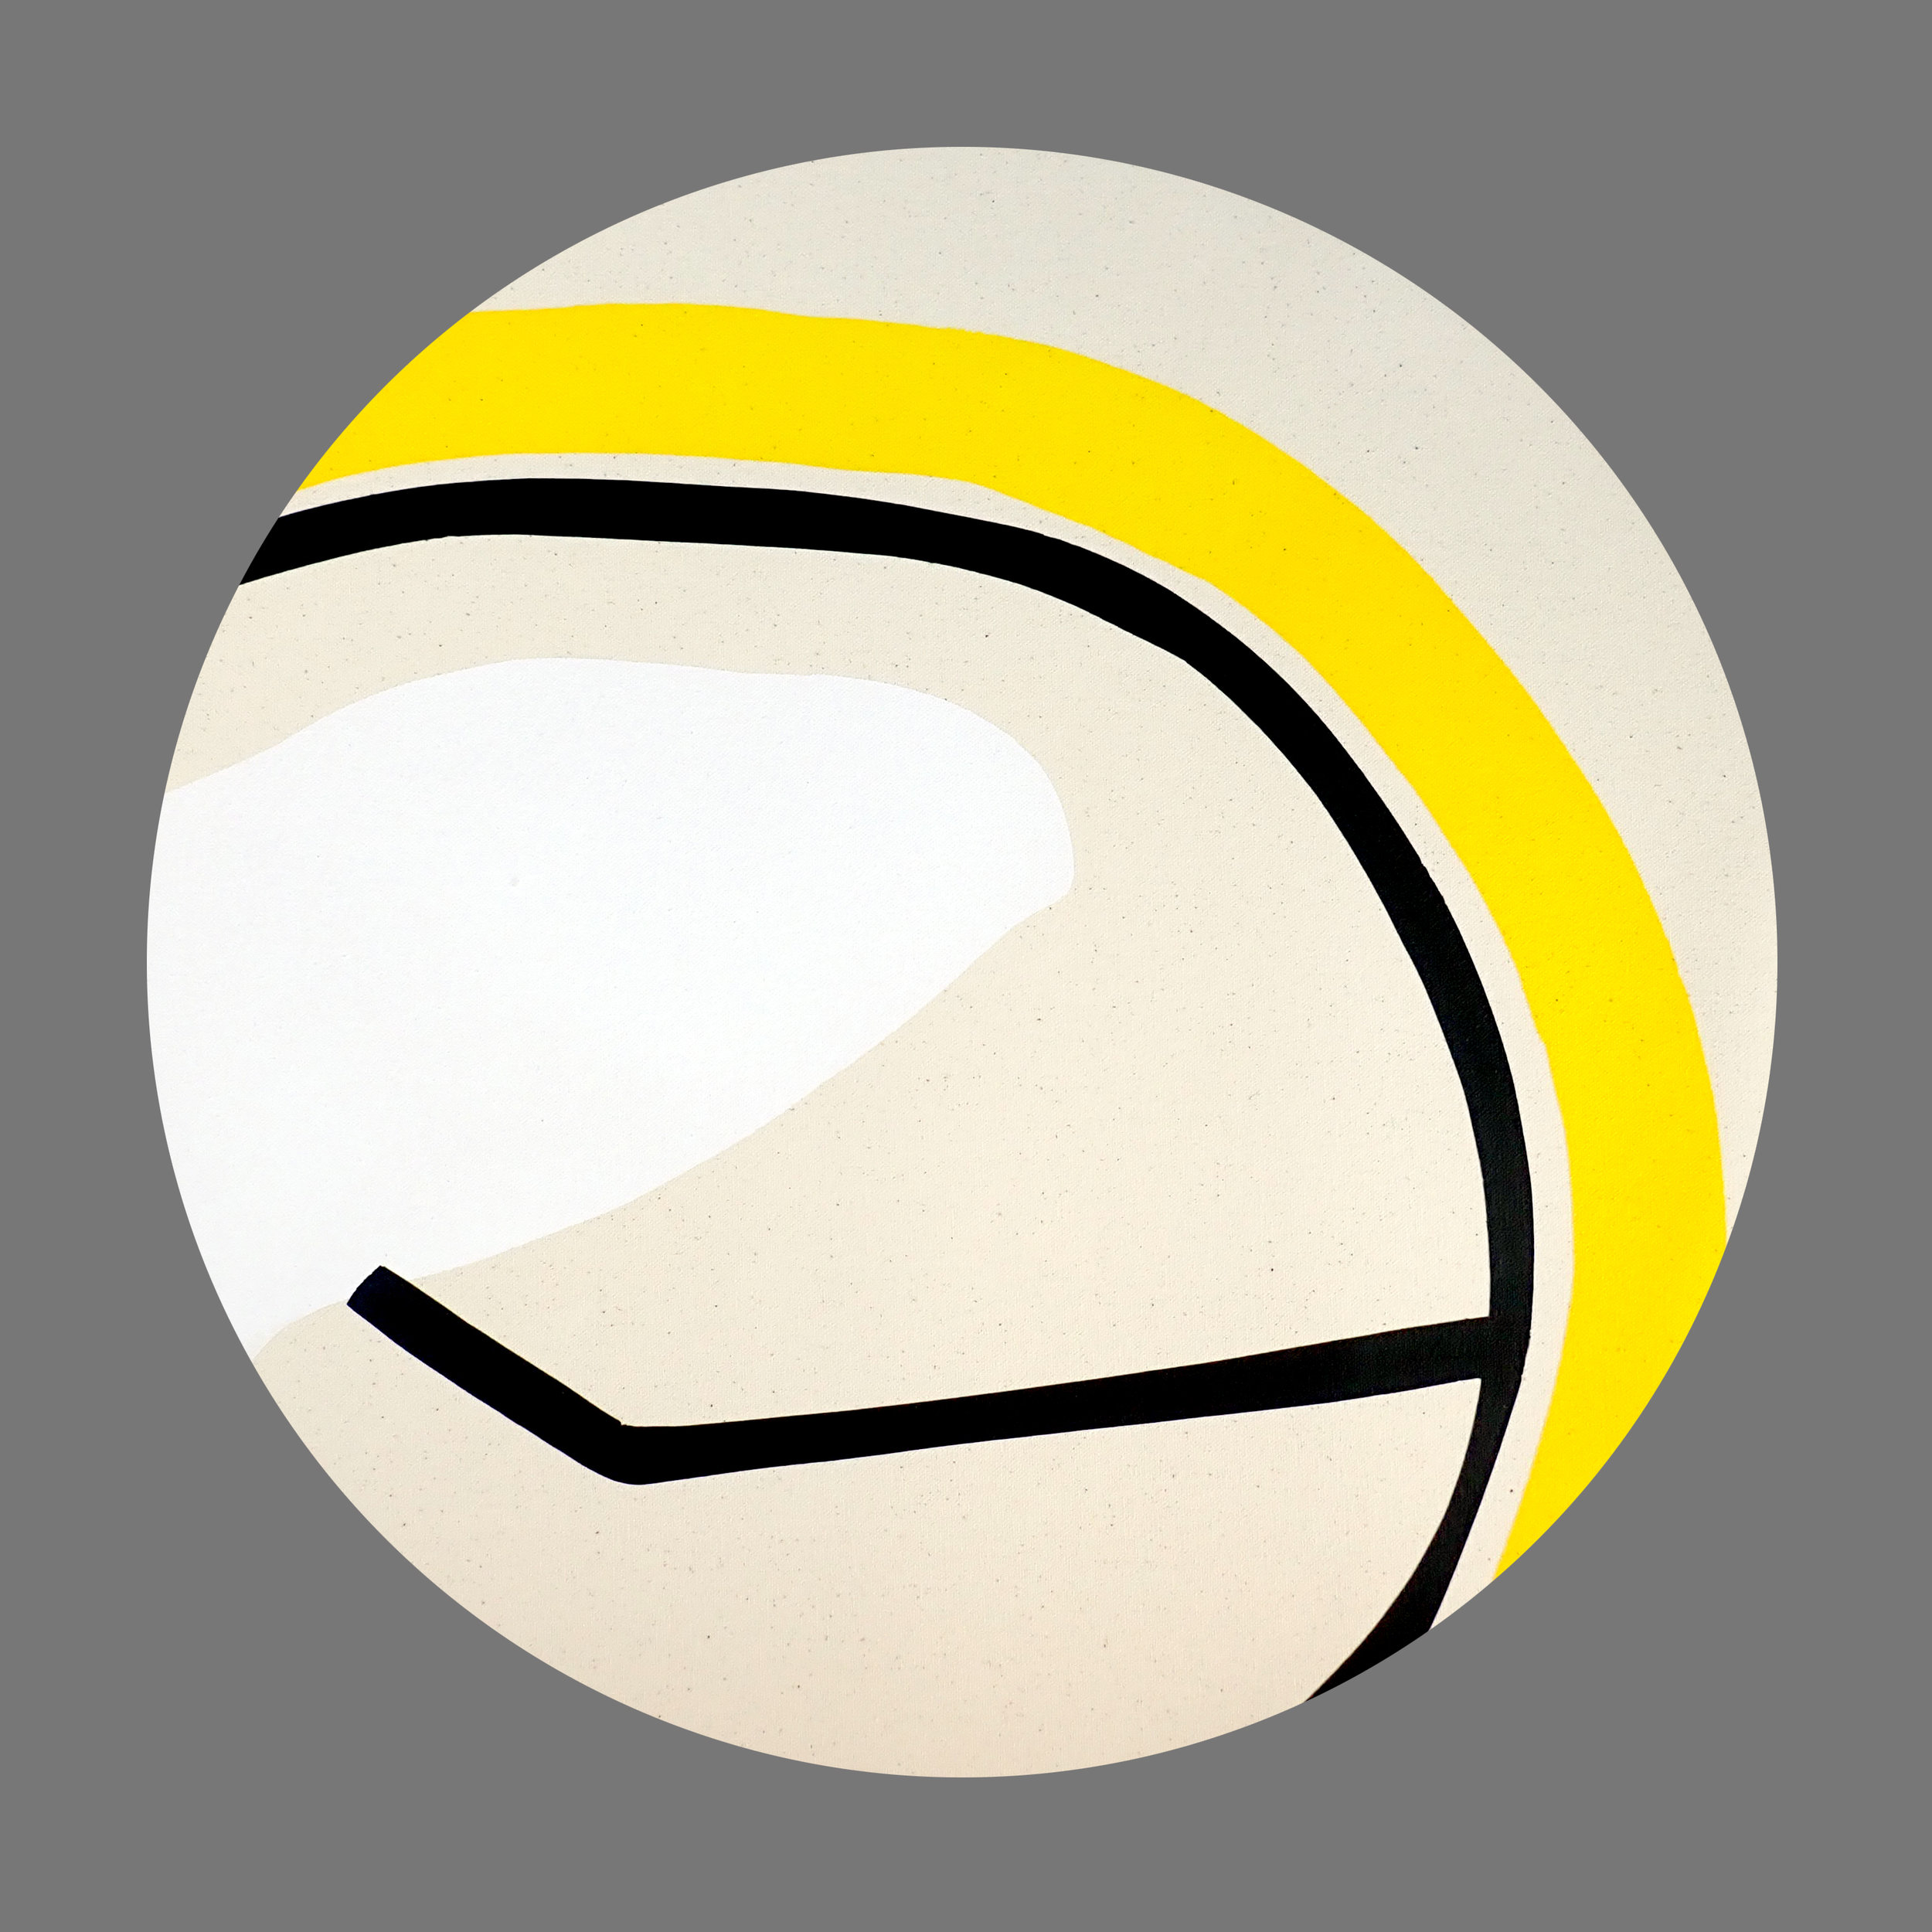 Circle with yellow line and black drawing